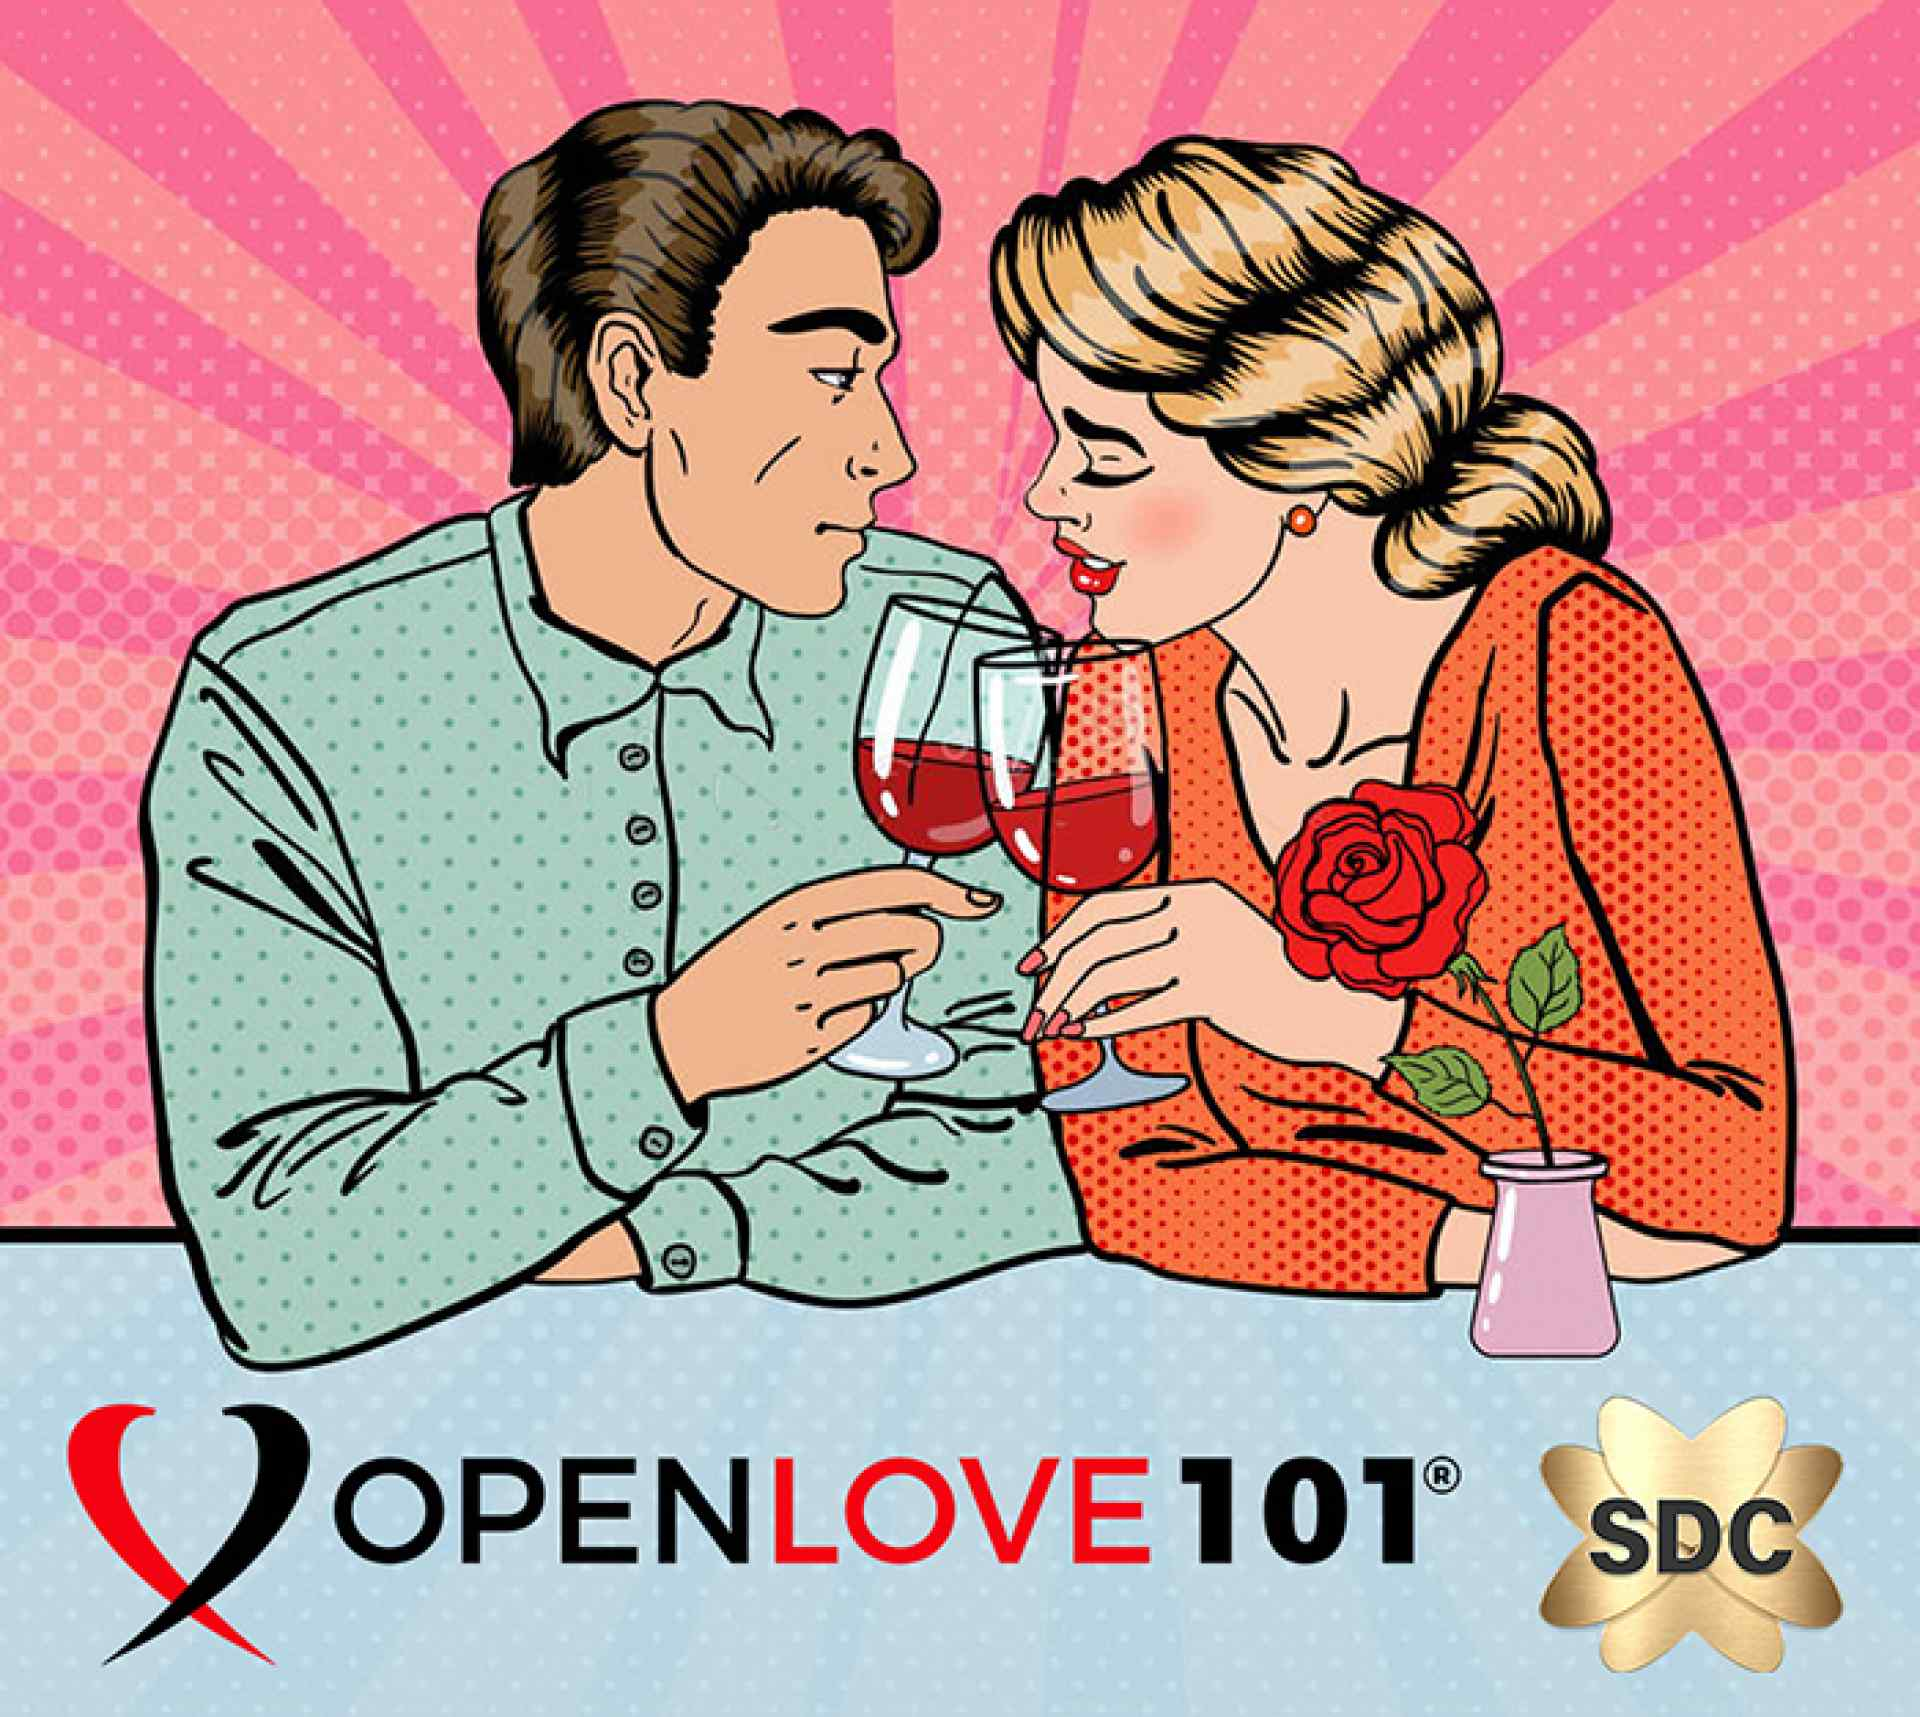 Openlove 101 SDC Newbie Lifestyle Club Guide Drinking